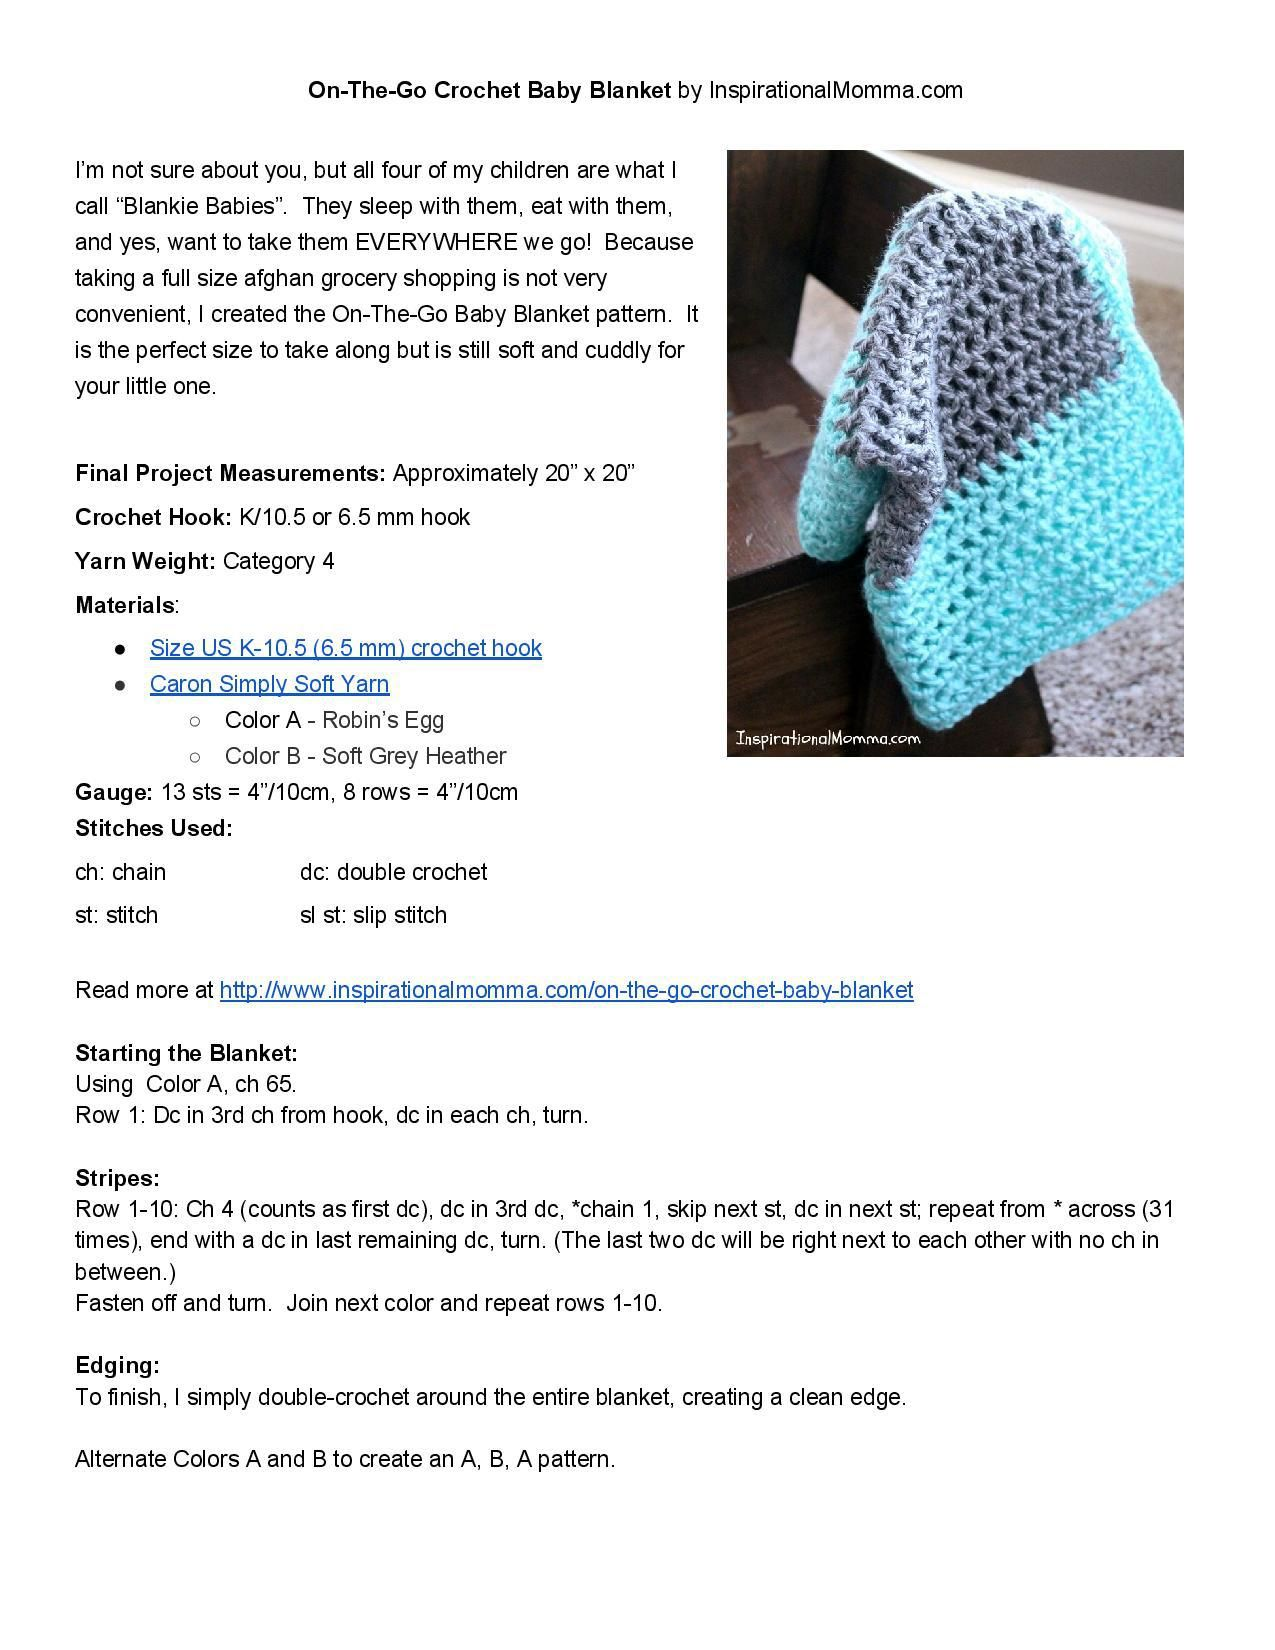 On-The-Go Crochet Baby Blanket | Baby Blanket Patterns | Pinterest ...